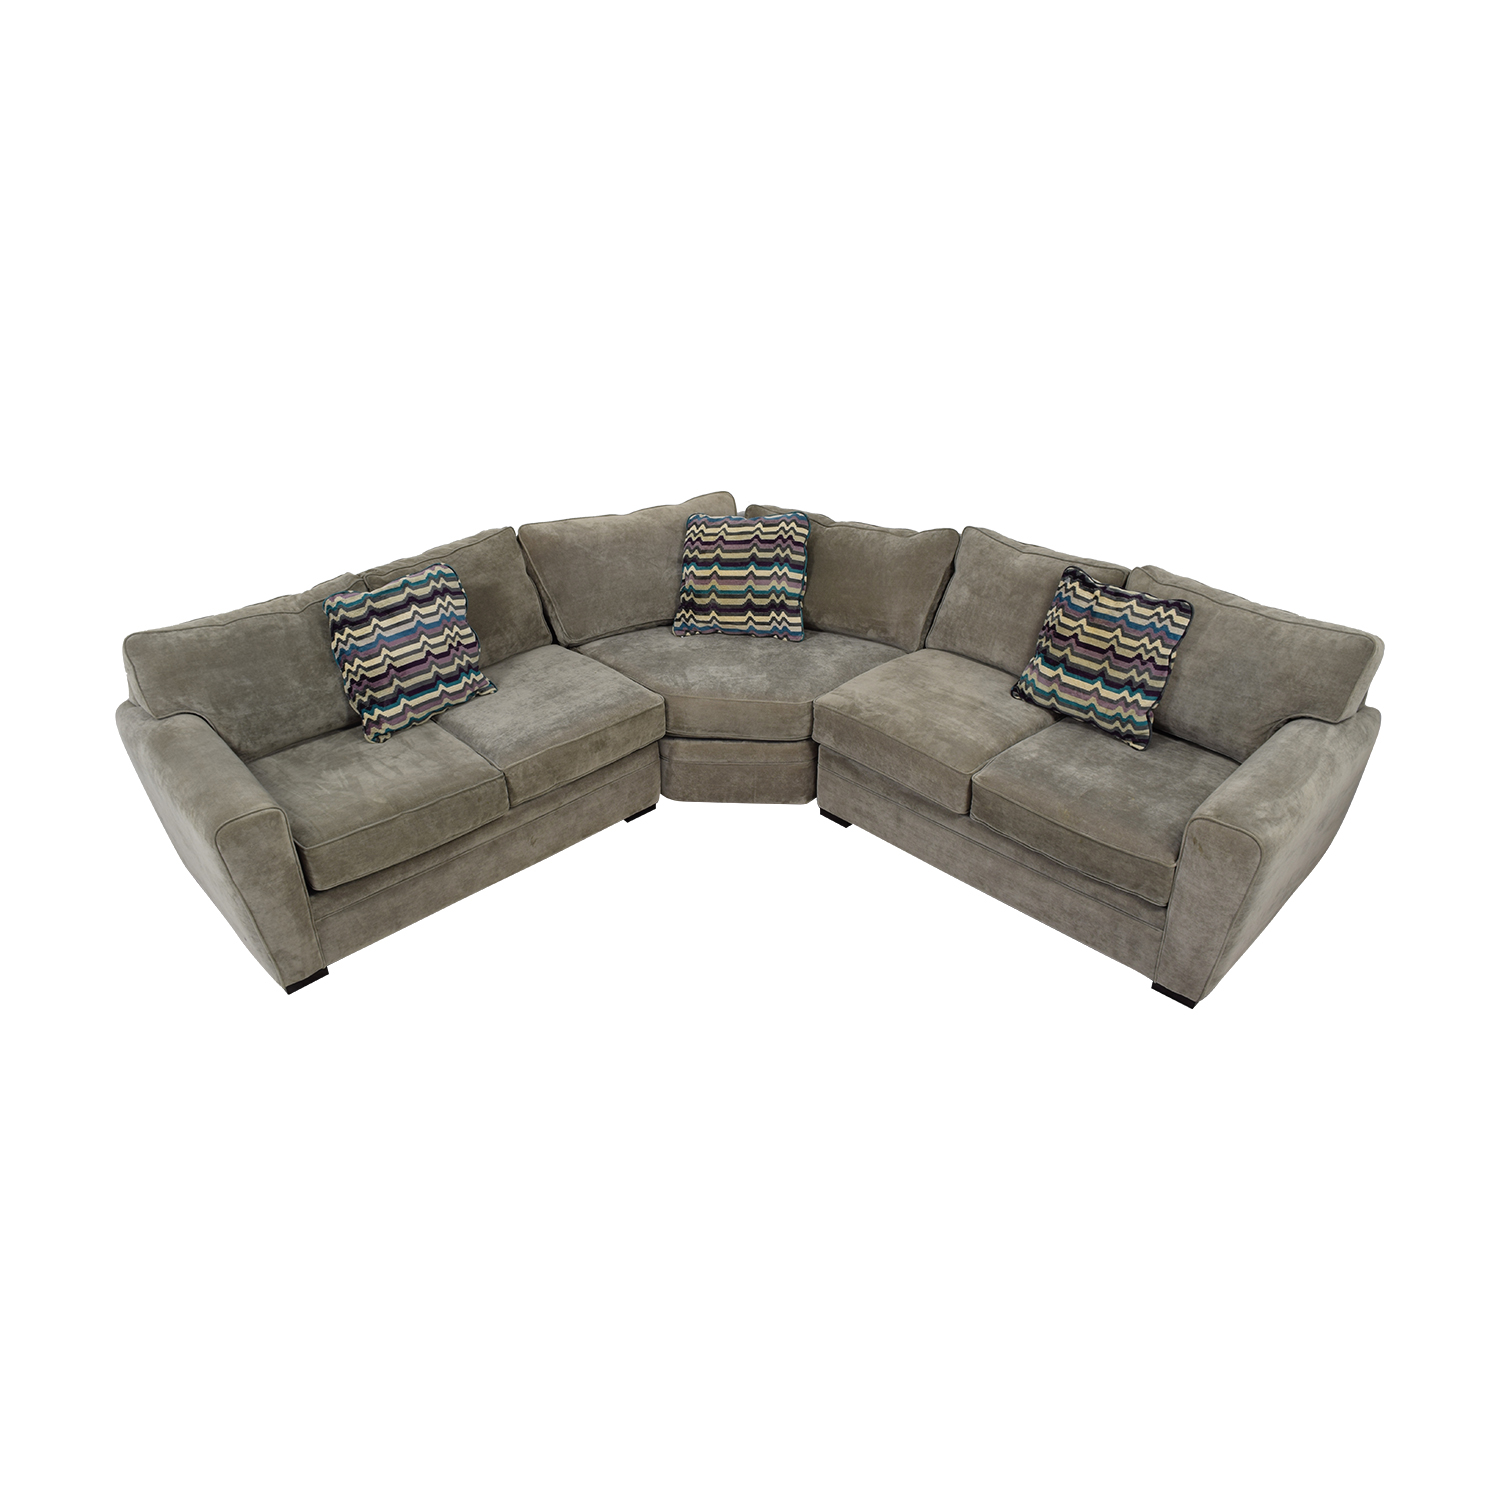 shop Raymour & Flanigan Raymour & Flanigan Grey L-Shaped Sectional online